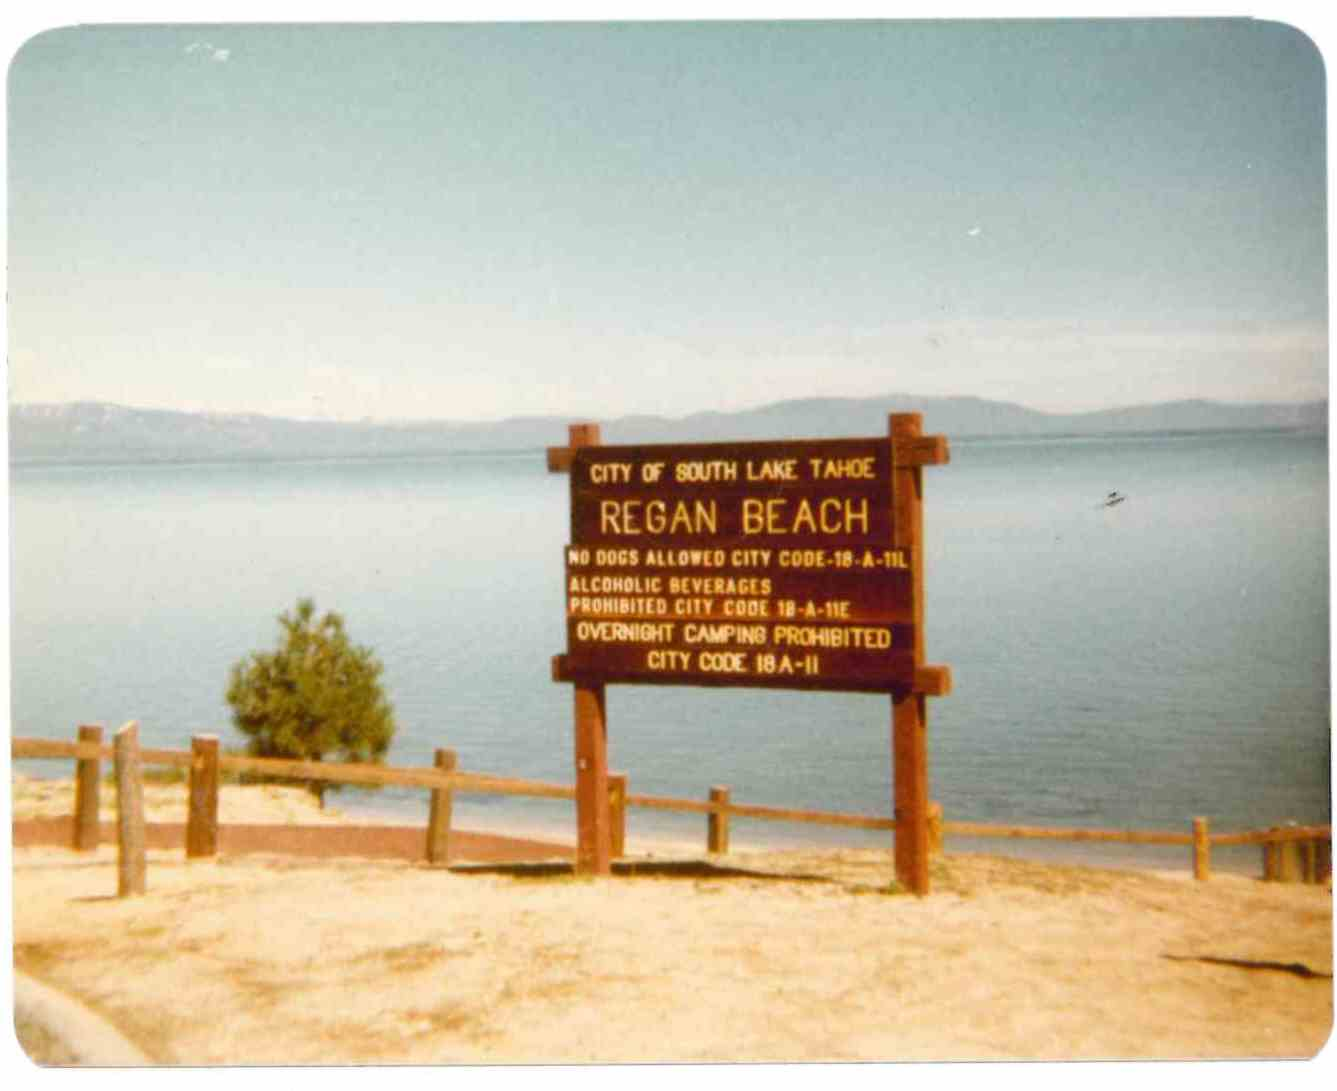 Regan Beach Sign 1981.jpg